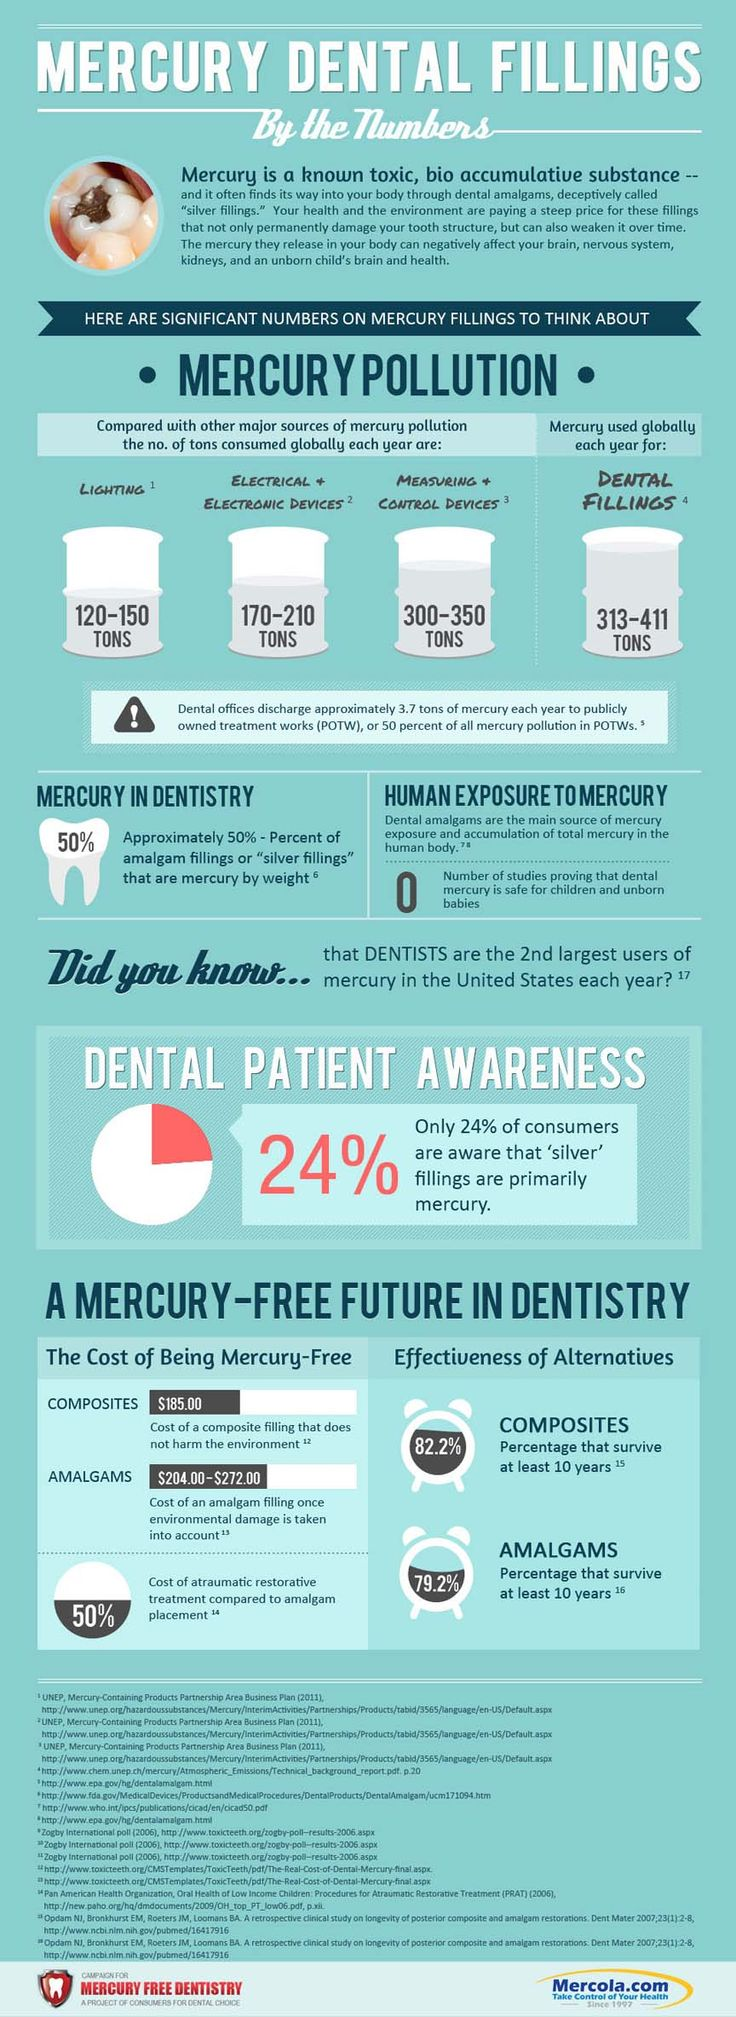 """Dentists who use mercury fillings claim that amalgam is safe because it's been used for 150 years. More accurately, dental amalgam is a Civil War relic, hardly a point in its favor. It is no better, nor safer,  than other discarded  medical practices like bleeding patients, administering calomel, and performing surgery with unwashed hands."" Say NO to ""silver"" fillings!"